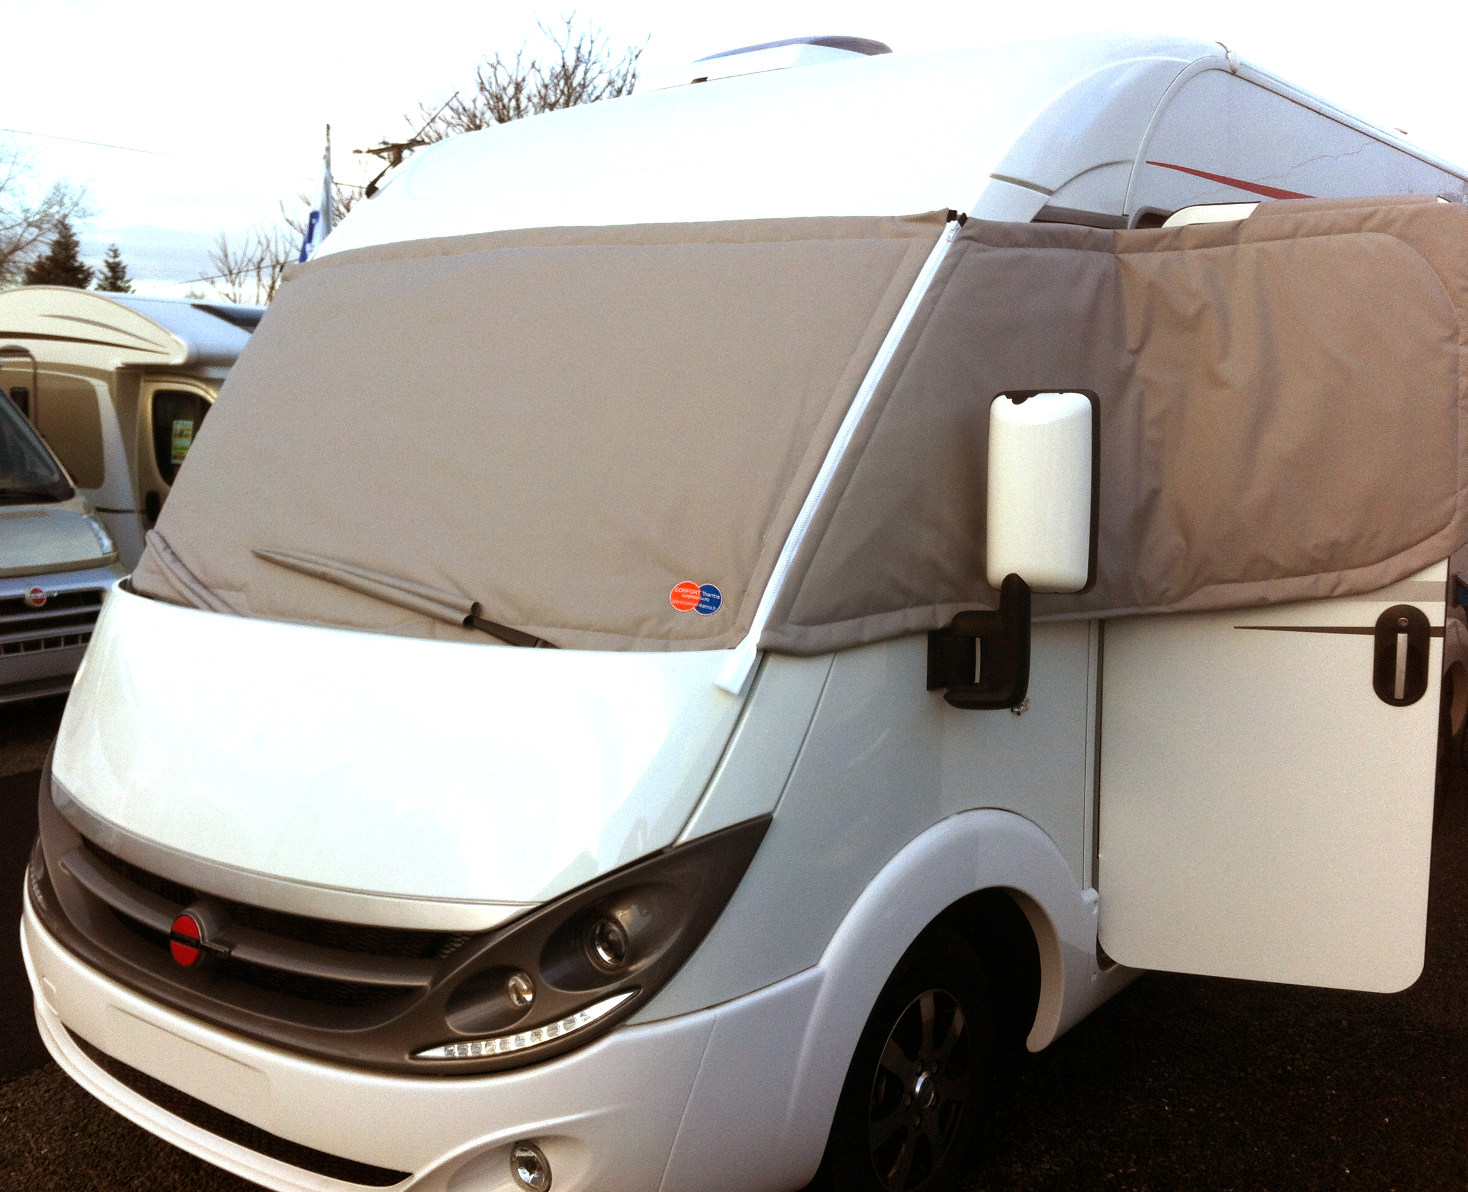 Camping car int gral comfort 39 therme isolation thermique pour camping car - Porte ouverte camping car ...